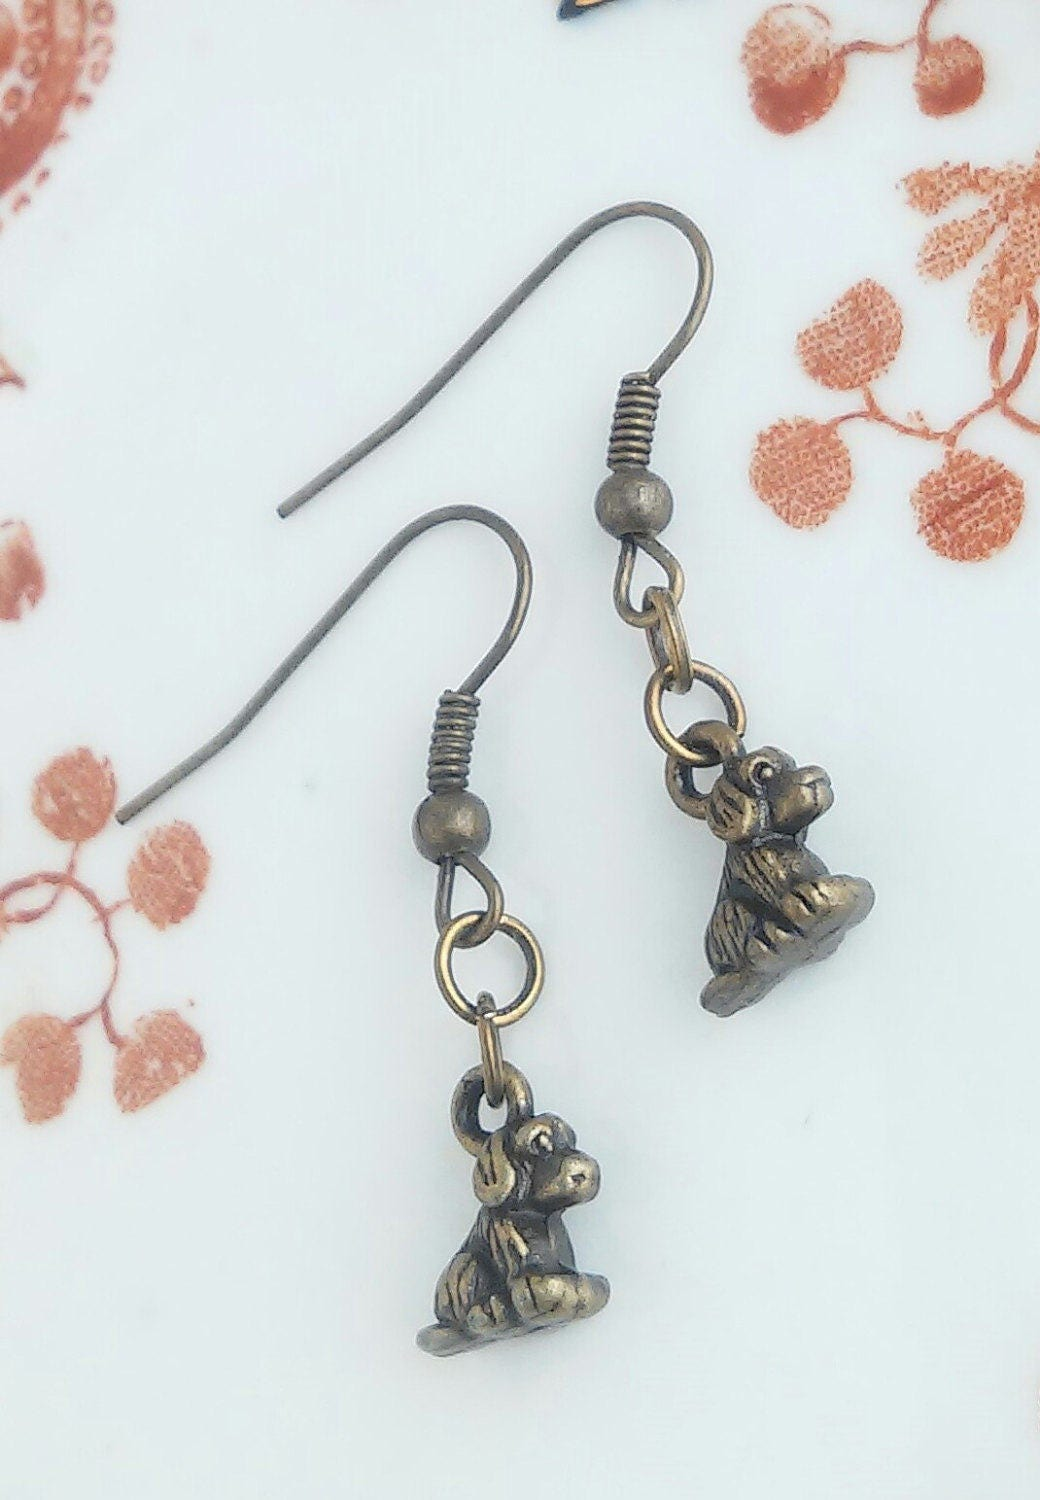 Dog Charm Earrings Antique Bronze Jewellery Gift Dogs Doggy Puppy Pup Pet Animal